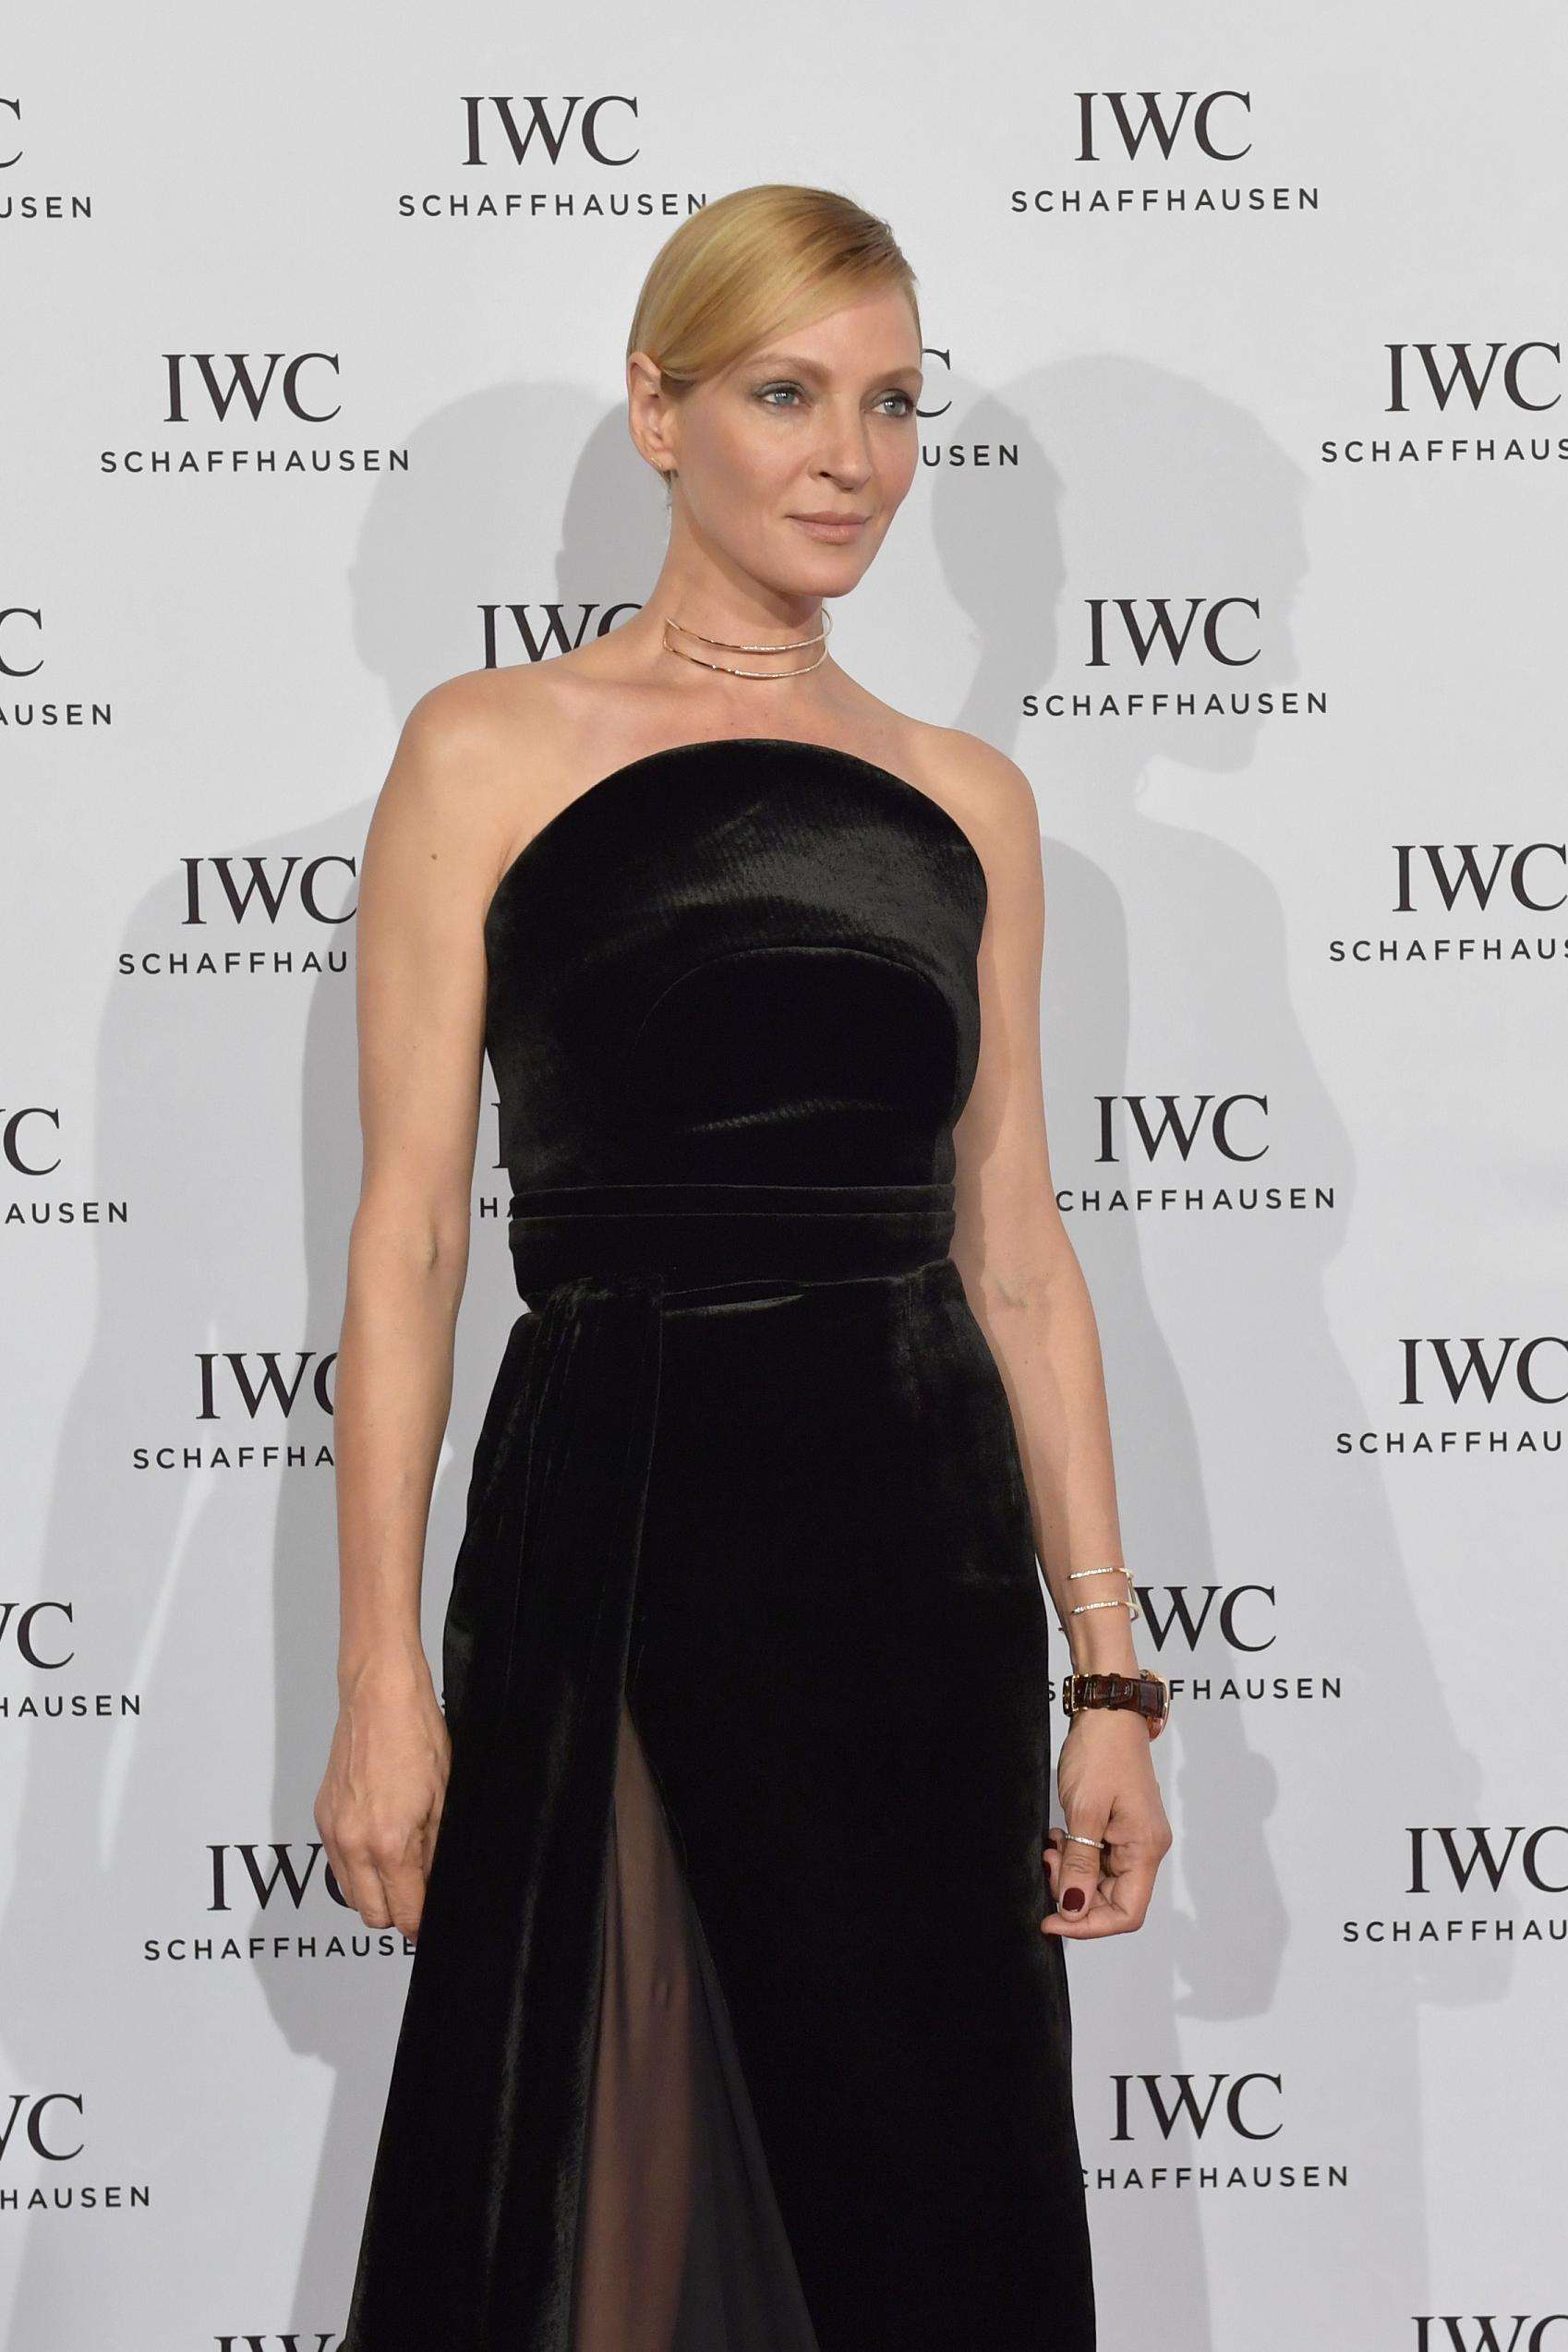 ZURICH, SWITZERLAND - SEPTEMBER 24: Uma Thurman attends the IWC 'For the Love of Cinema' gala dinner held at AURA Zurich on September 24, 2016 in Zurich, Switzerland. During the event, actress Uma Thurman presented the second 'Filmmaker Award' worth CHF 100.000 in sponsorship. The award was set up by the Association for the Promotion of Film in Switzerland ('Verein zur Filmfoerderung in der Schweiz'). (PPR/Getty Images for IWC/Harold Cunningham)